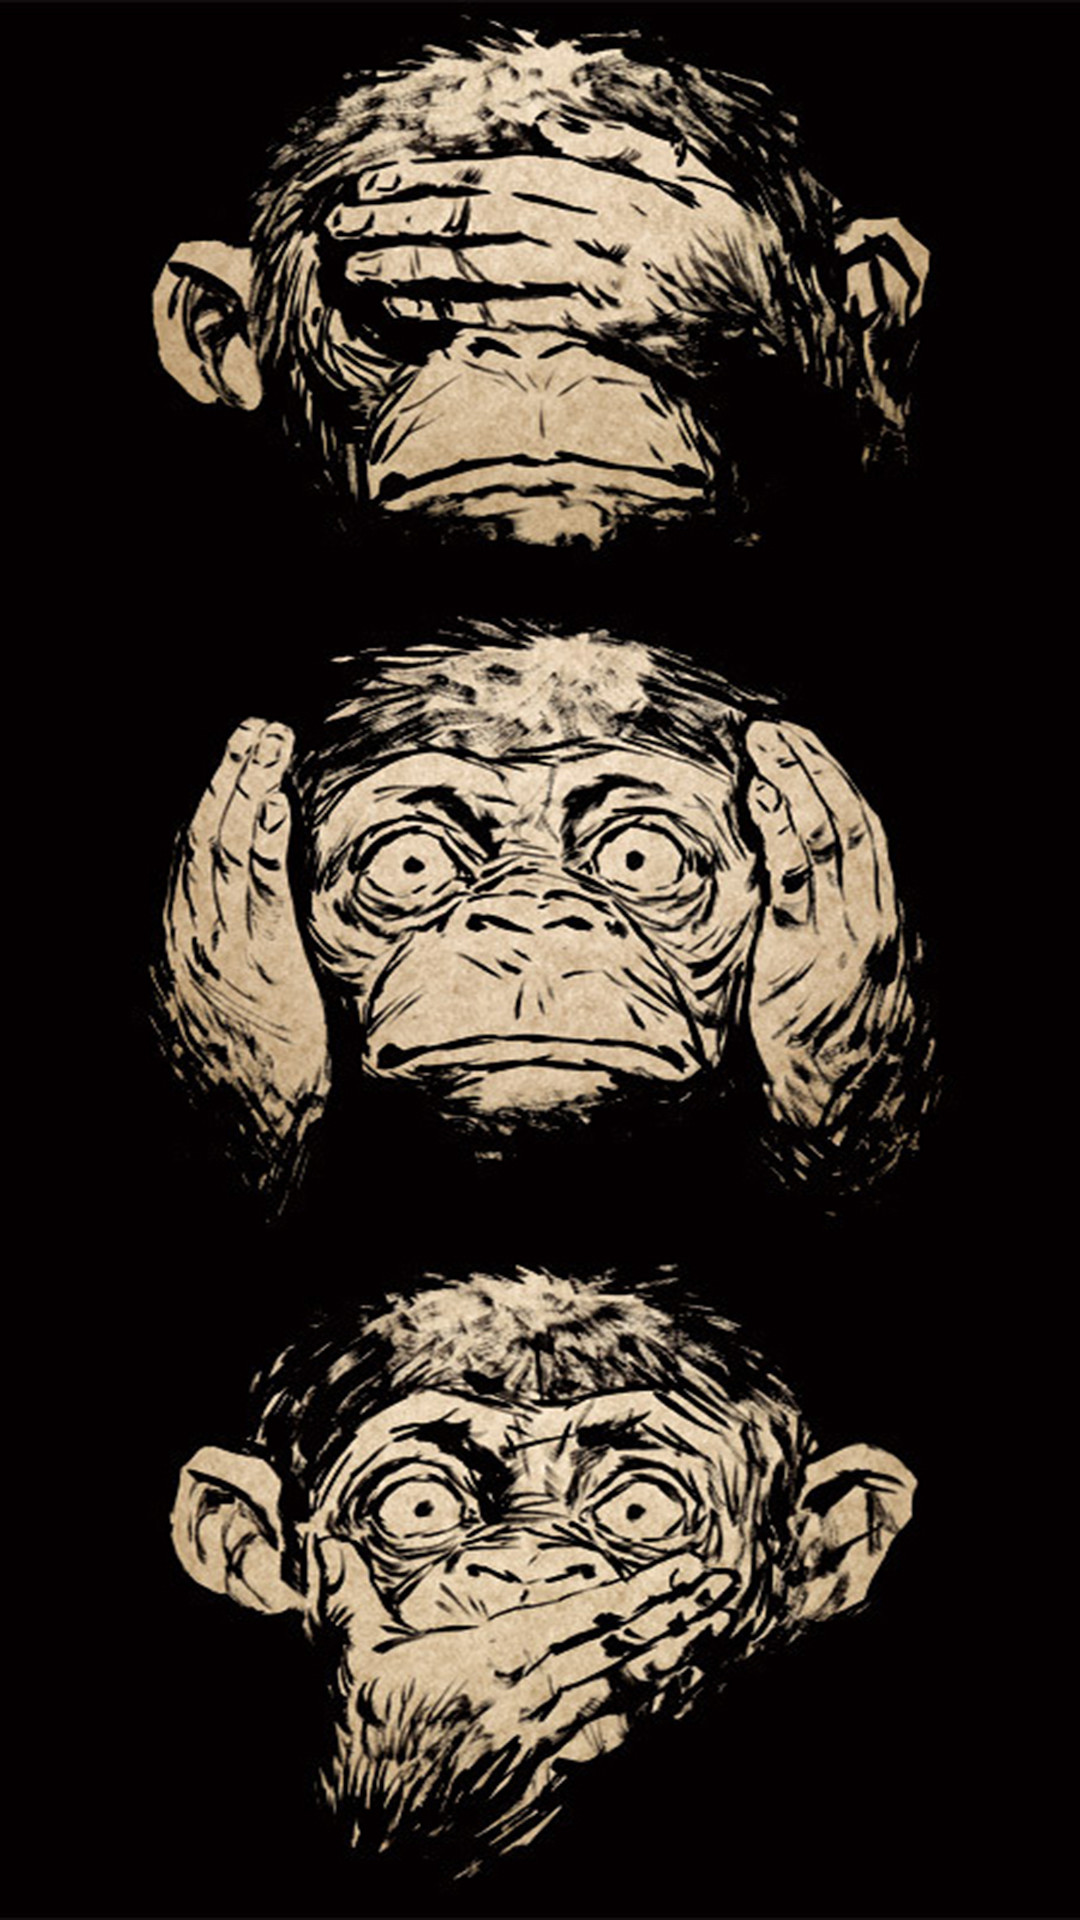 1080x1920 Three Wise Monkeys Wisdom iPhone 6 Plus HD Wallpaper ...